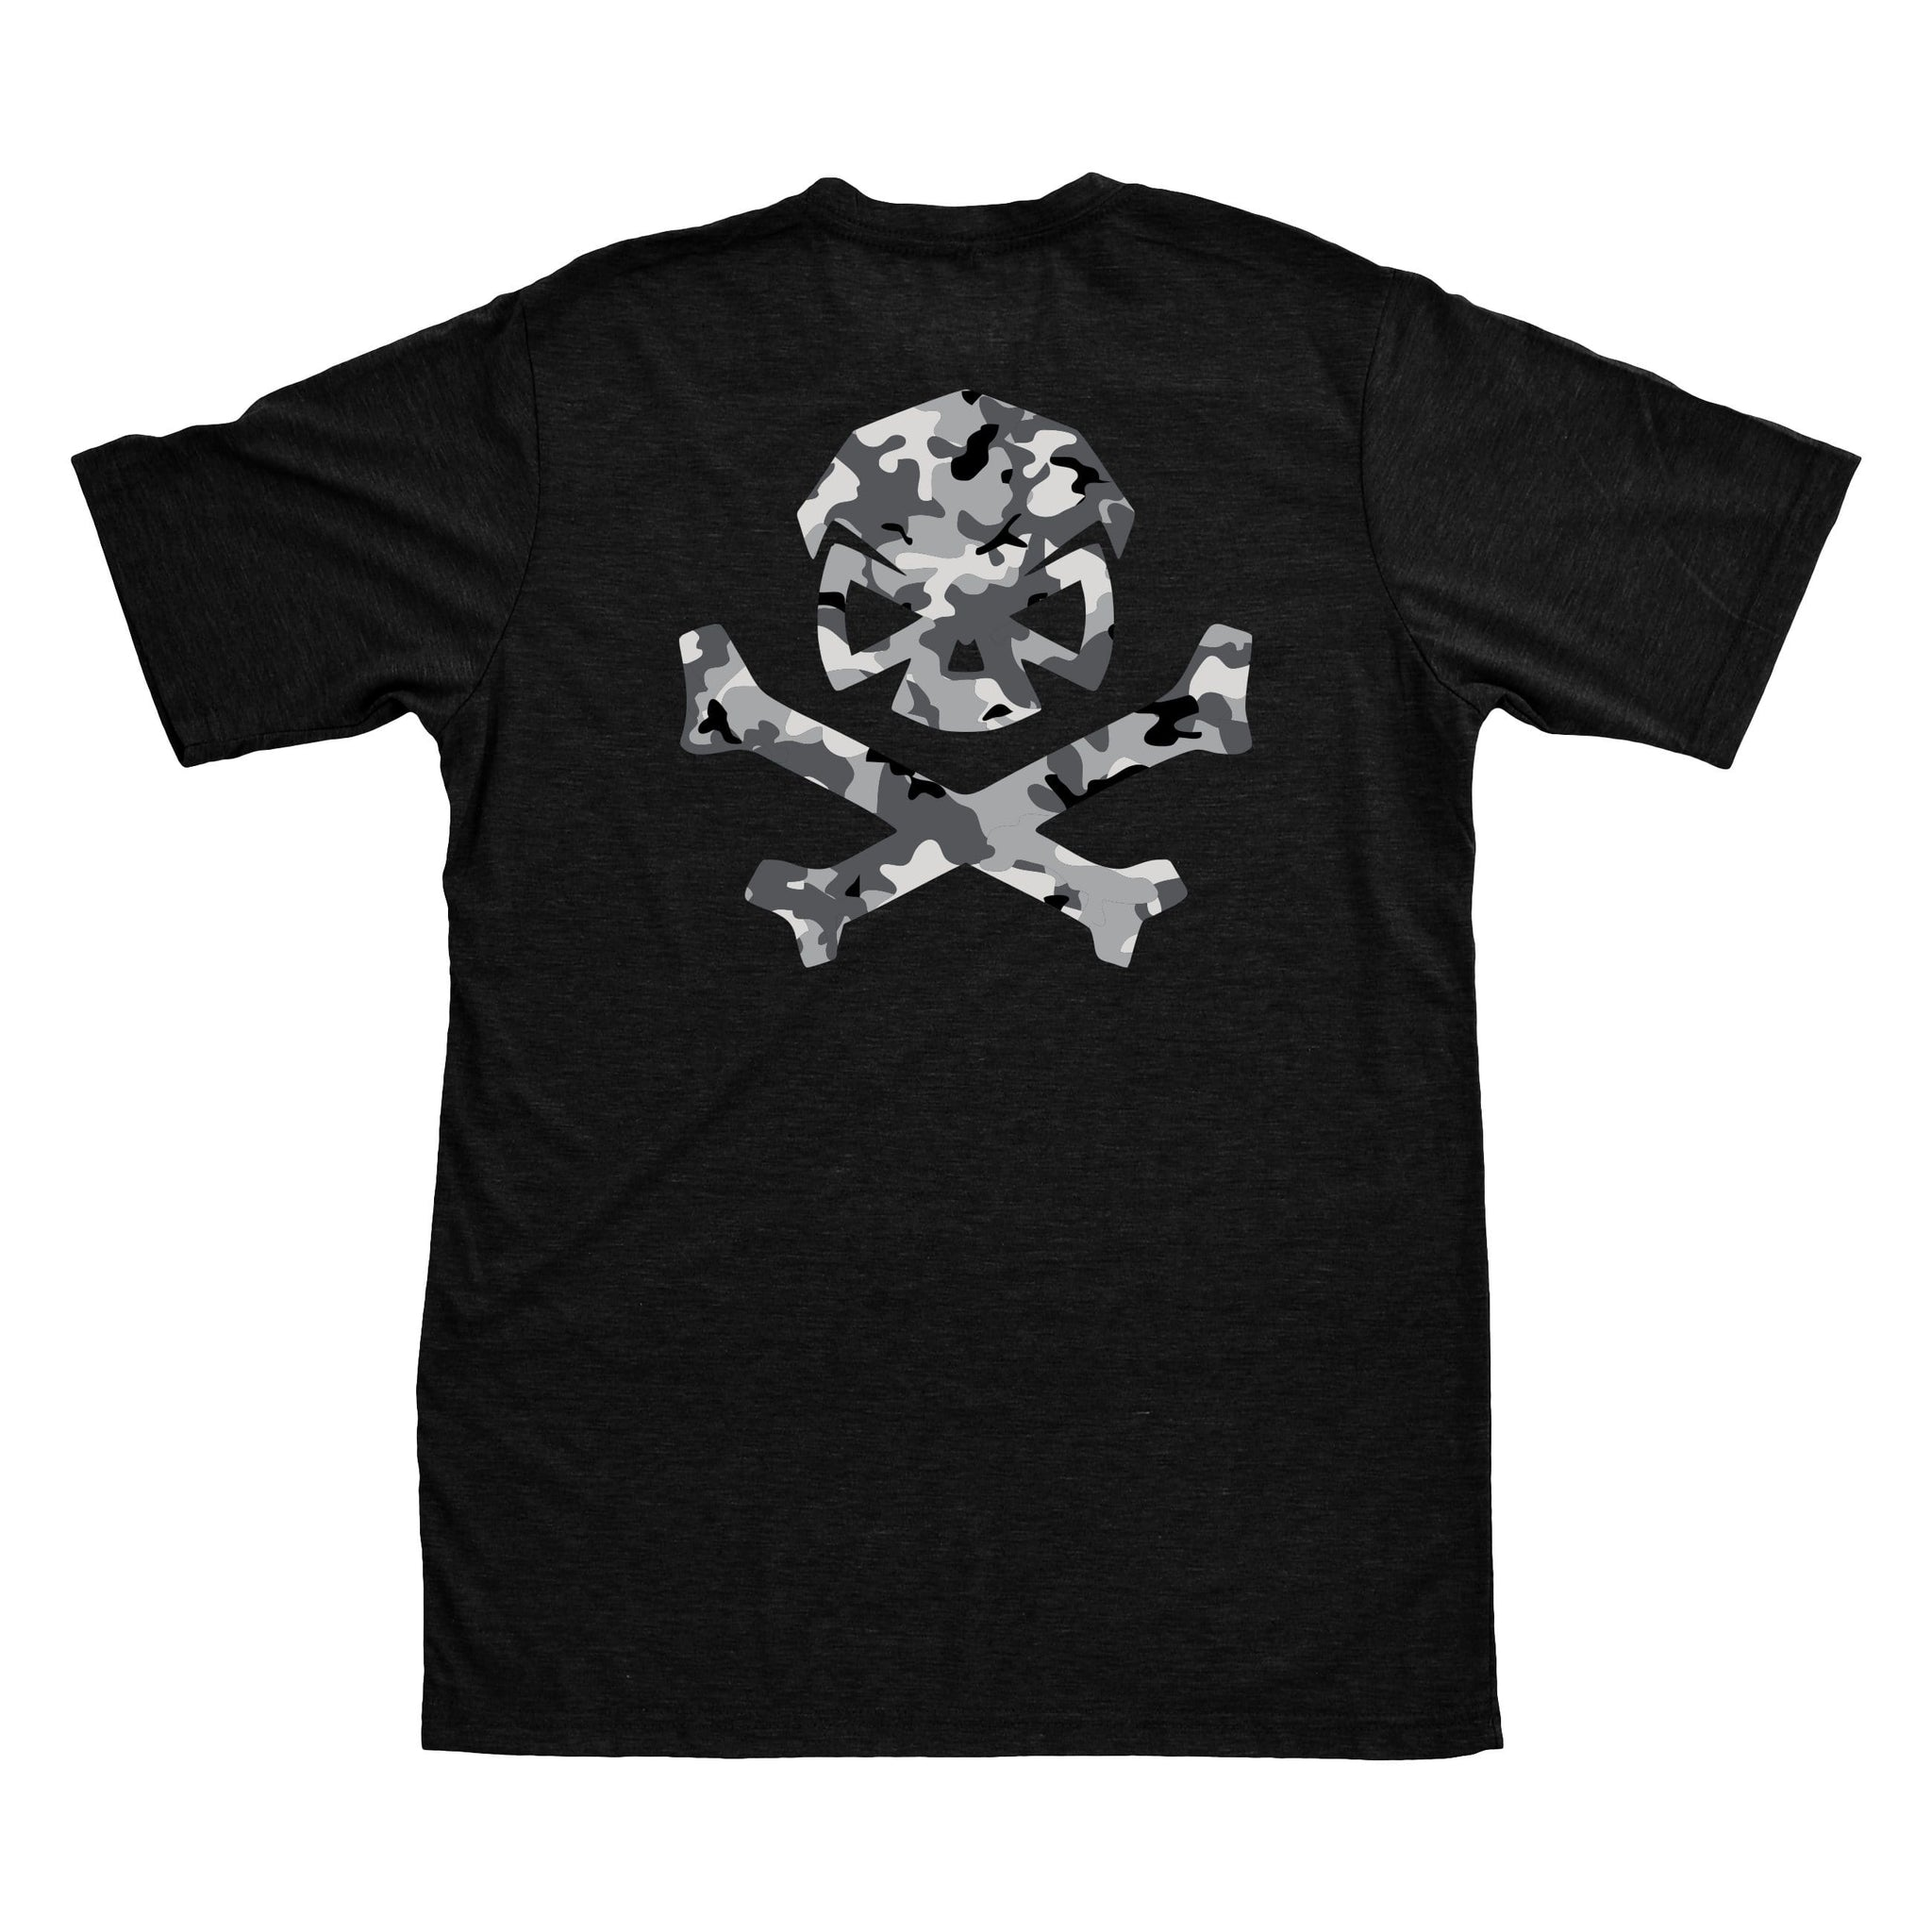 Multicam Logo Tee - Black/Grey_Multicam - T-Shirts - Pipe Hitters Union